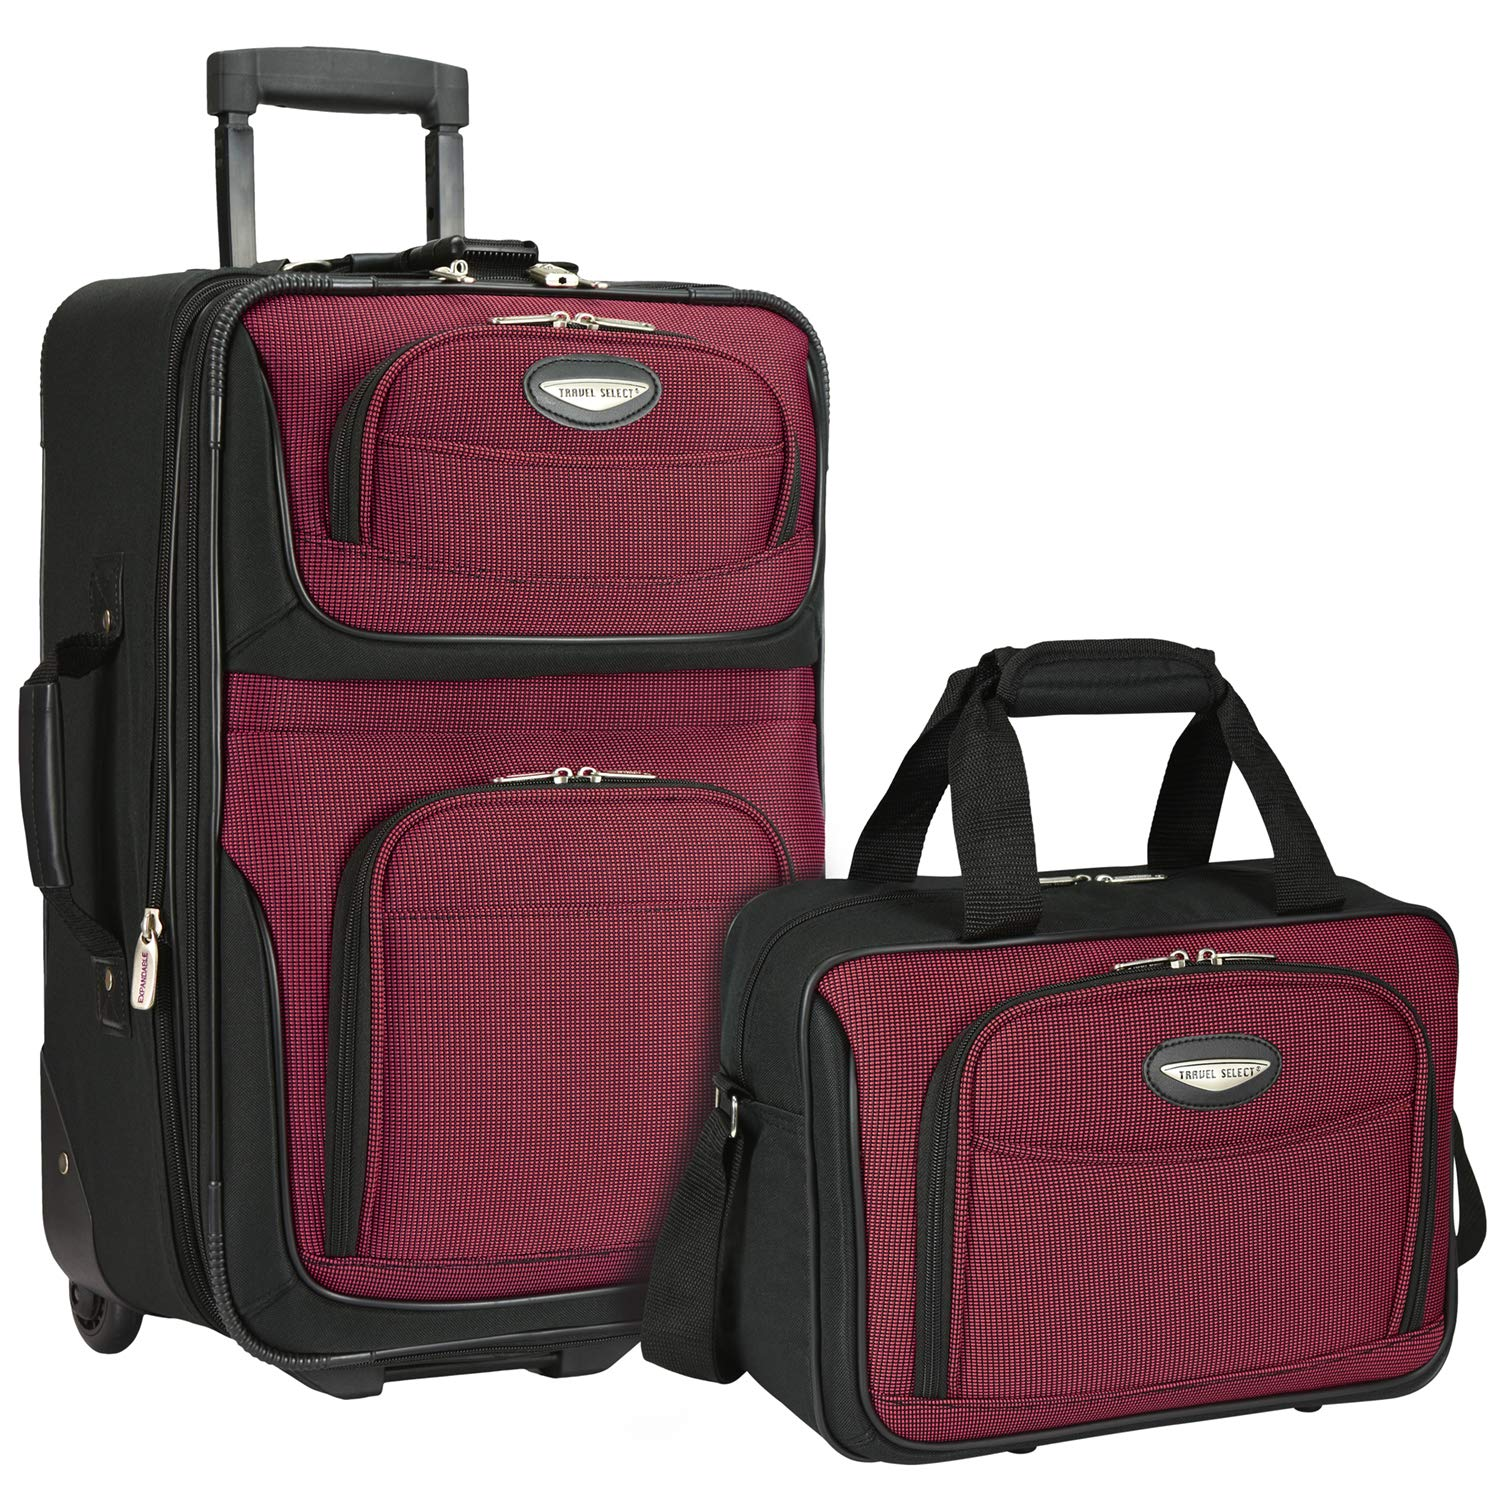 Traveler's Choice 2-Piece Set, Burgundy by Traveler's Choice